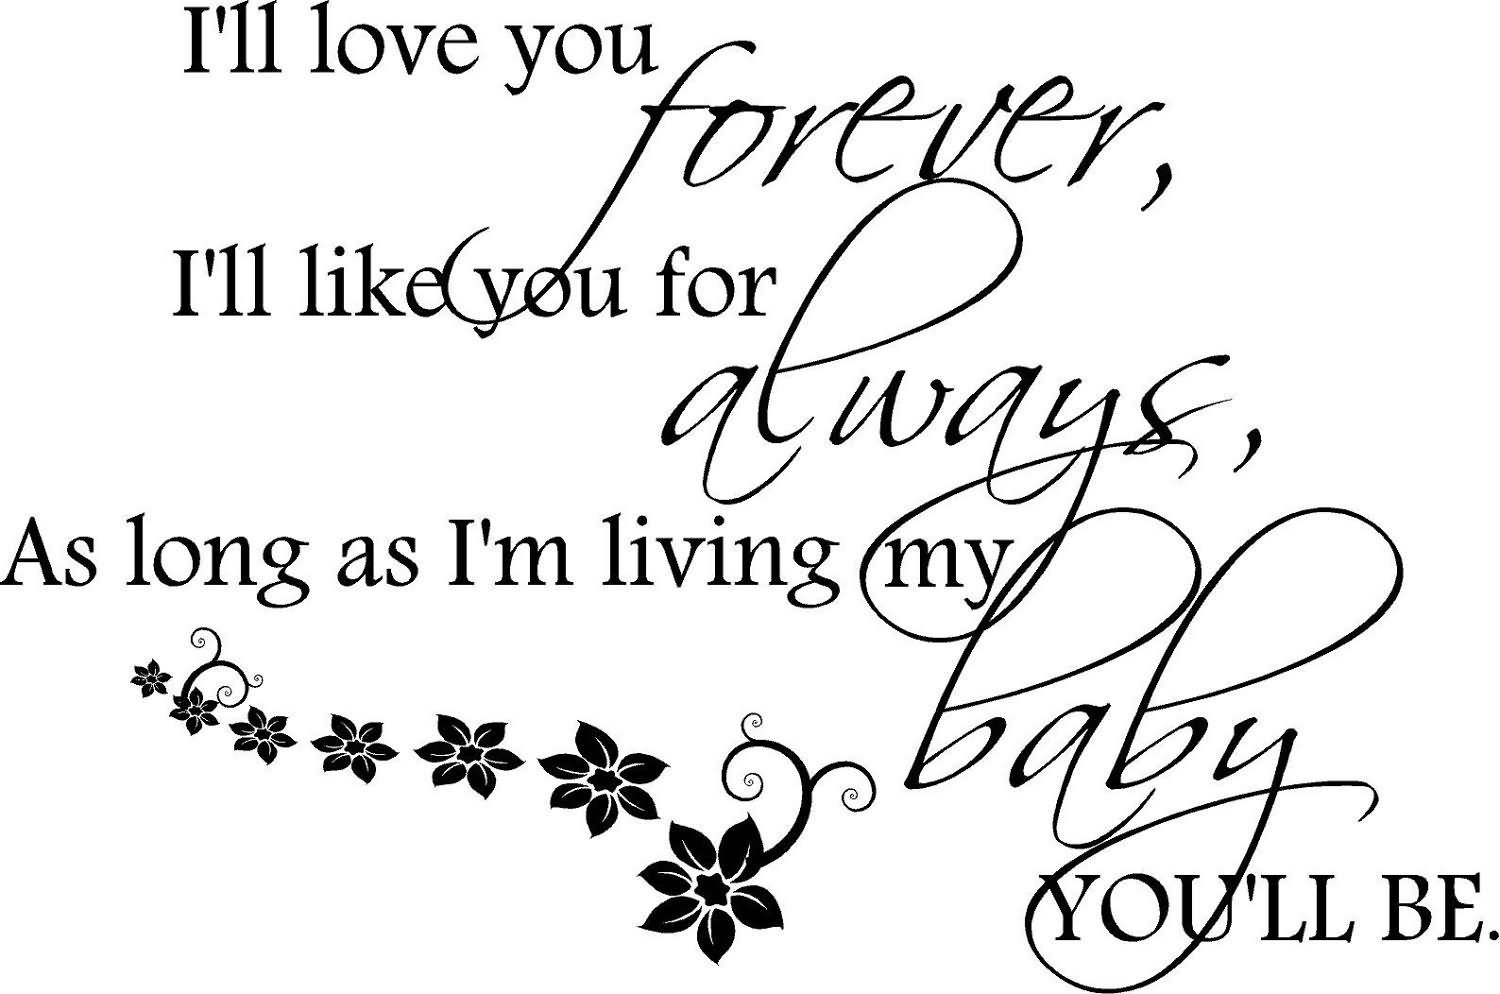 I Ll Love You Forever Quote I'll Love You Forever  Tattoo Me  Pinterest  Tattoo